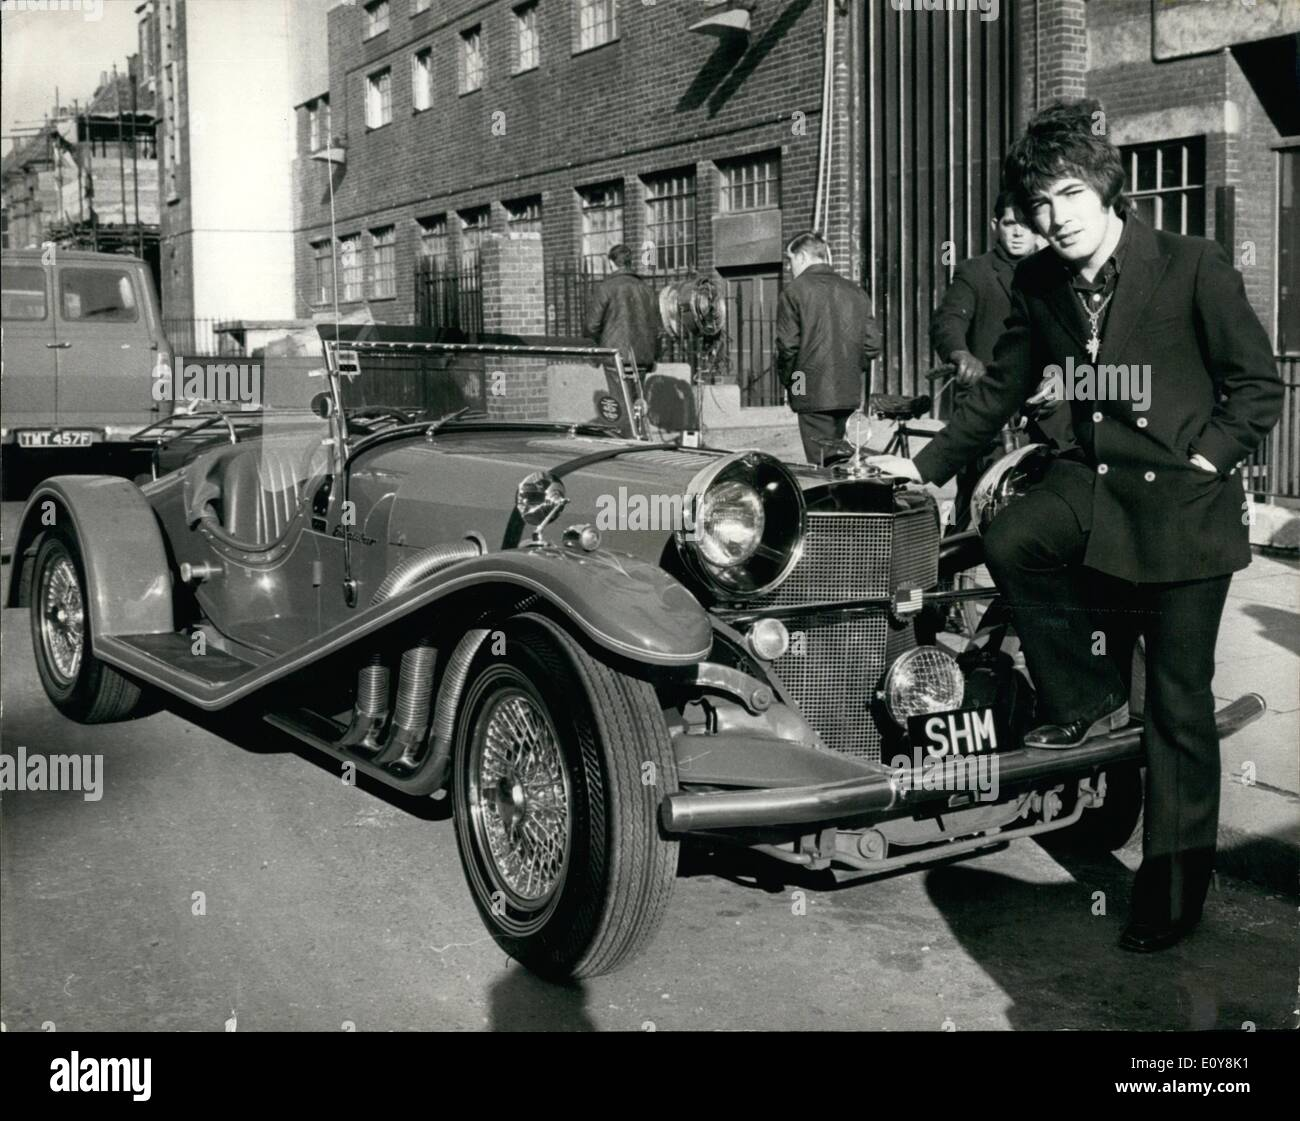 Feb. 02, 1969 - Barry Ryan Buys Tommy Steele's Mercedes. Pop singer Barry Ryan, pictured at the B.B.C. Lime Grove Studios, where he was rehearsing - with the £6,000 Mercedes car he has just bought from Tommy Steels. It is a 1967 Mercedes built as a replica of a 1936 model - Stock Image